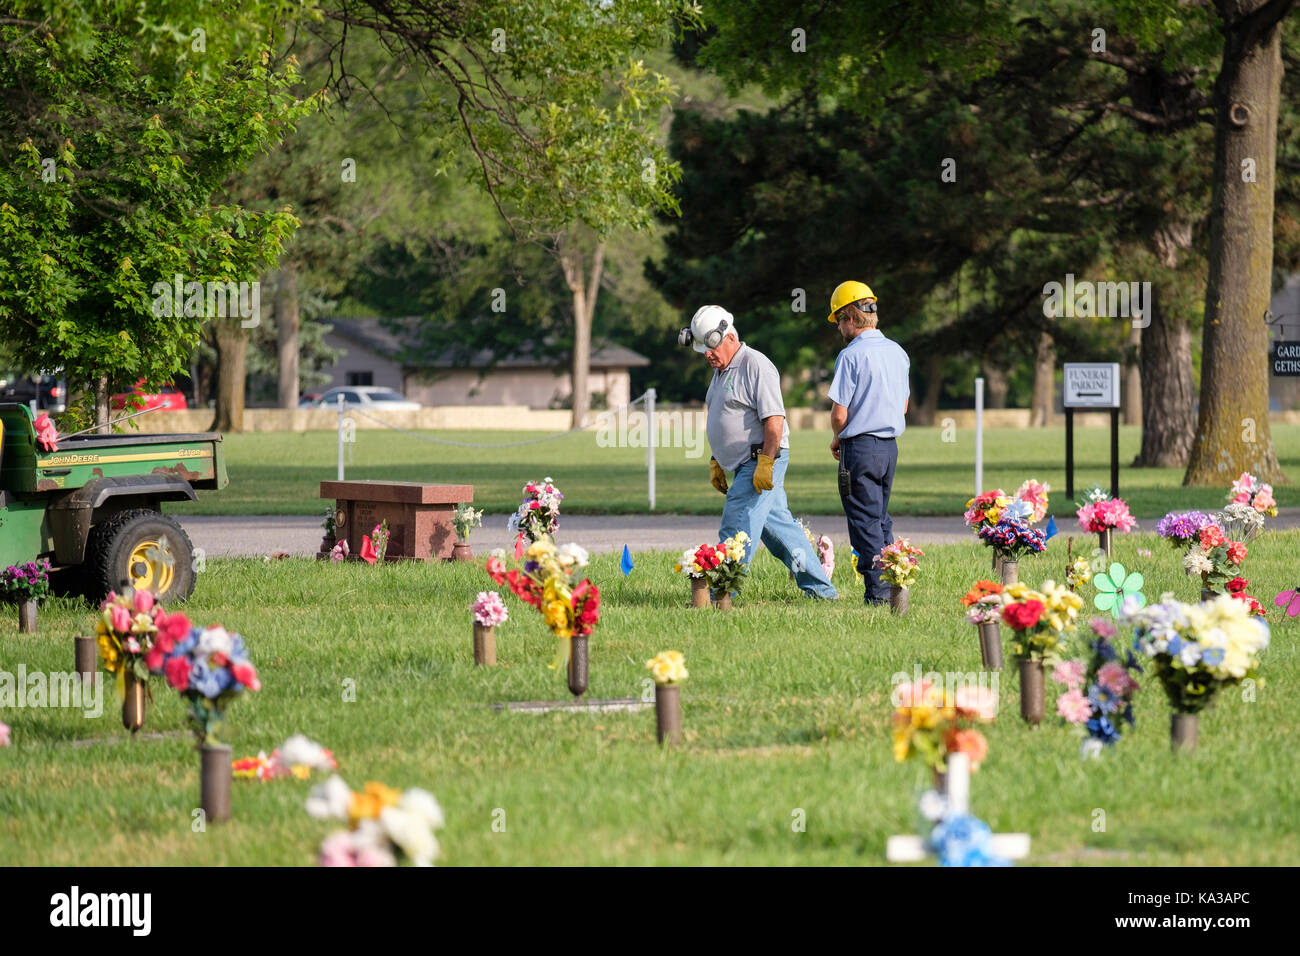 Two cemetery employees walk among floral decorations honoring the dead on Memorial Day in a cemetary in Wichita, - Stock Image